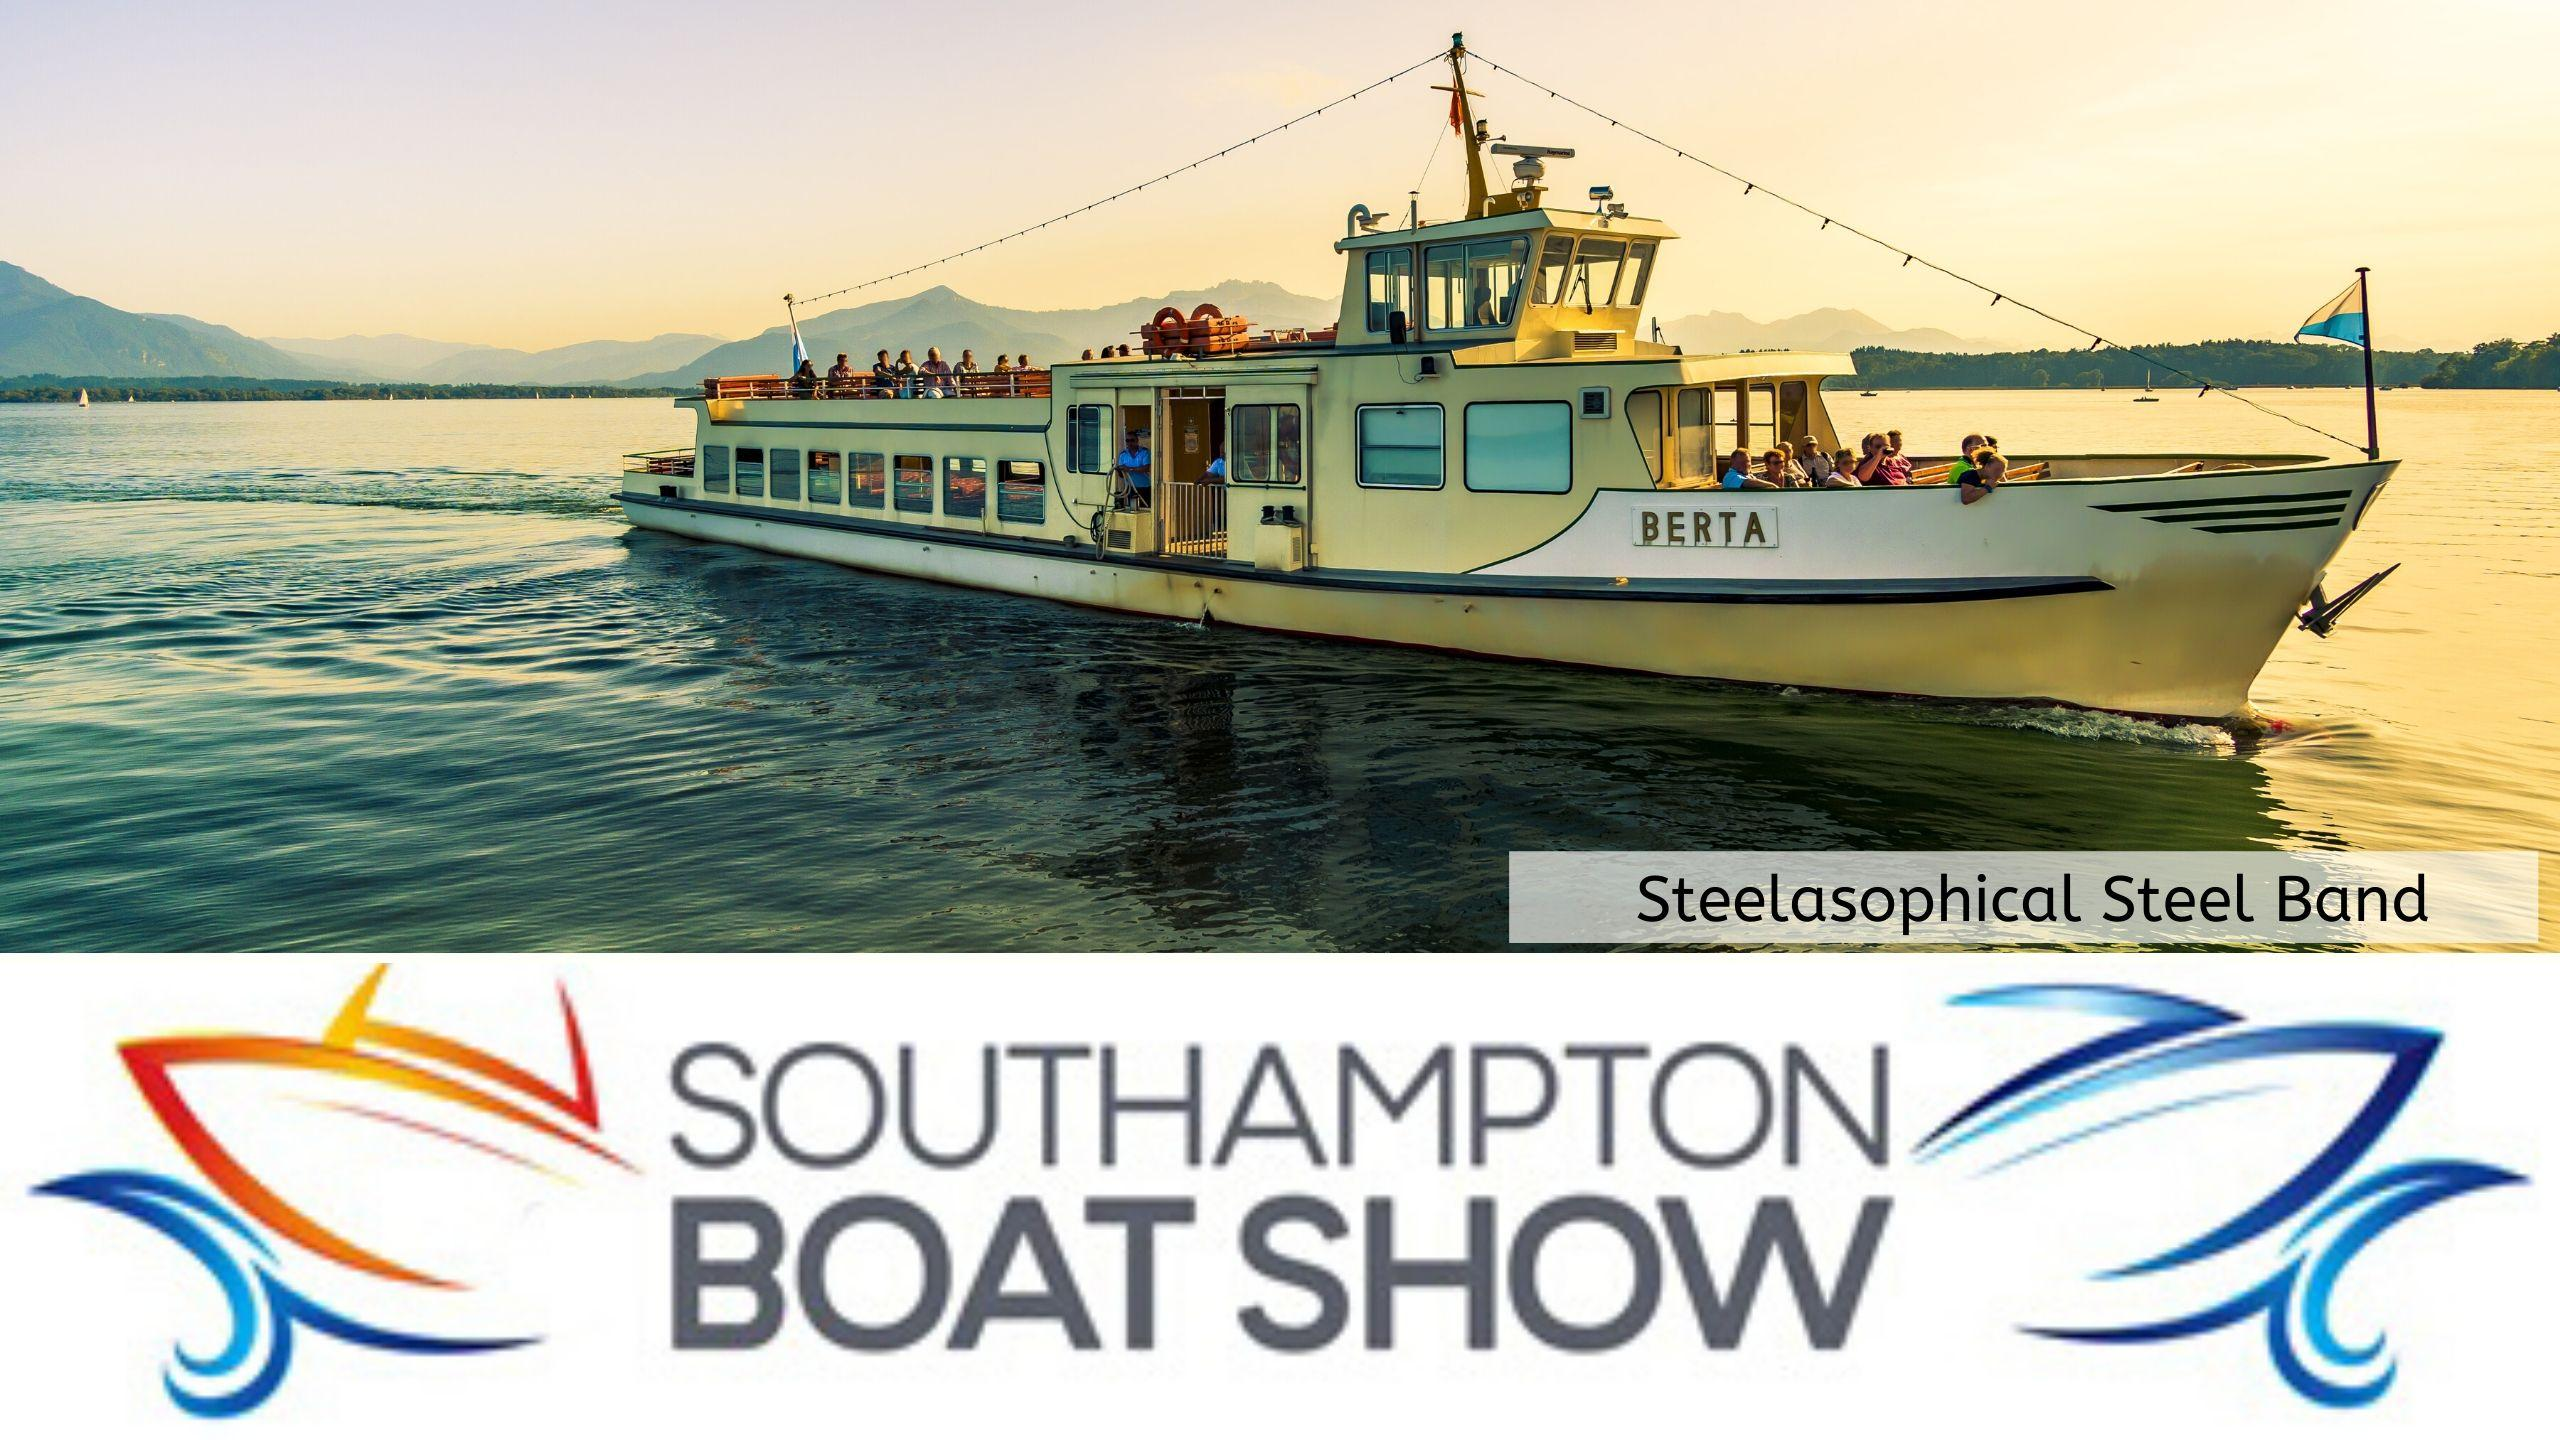 Steelasophical Steel Band Southampton Boat Show Yacht Market d3433